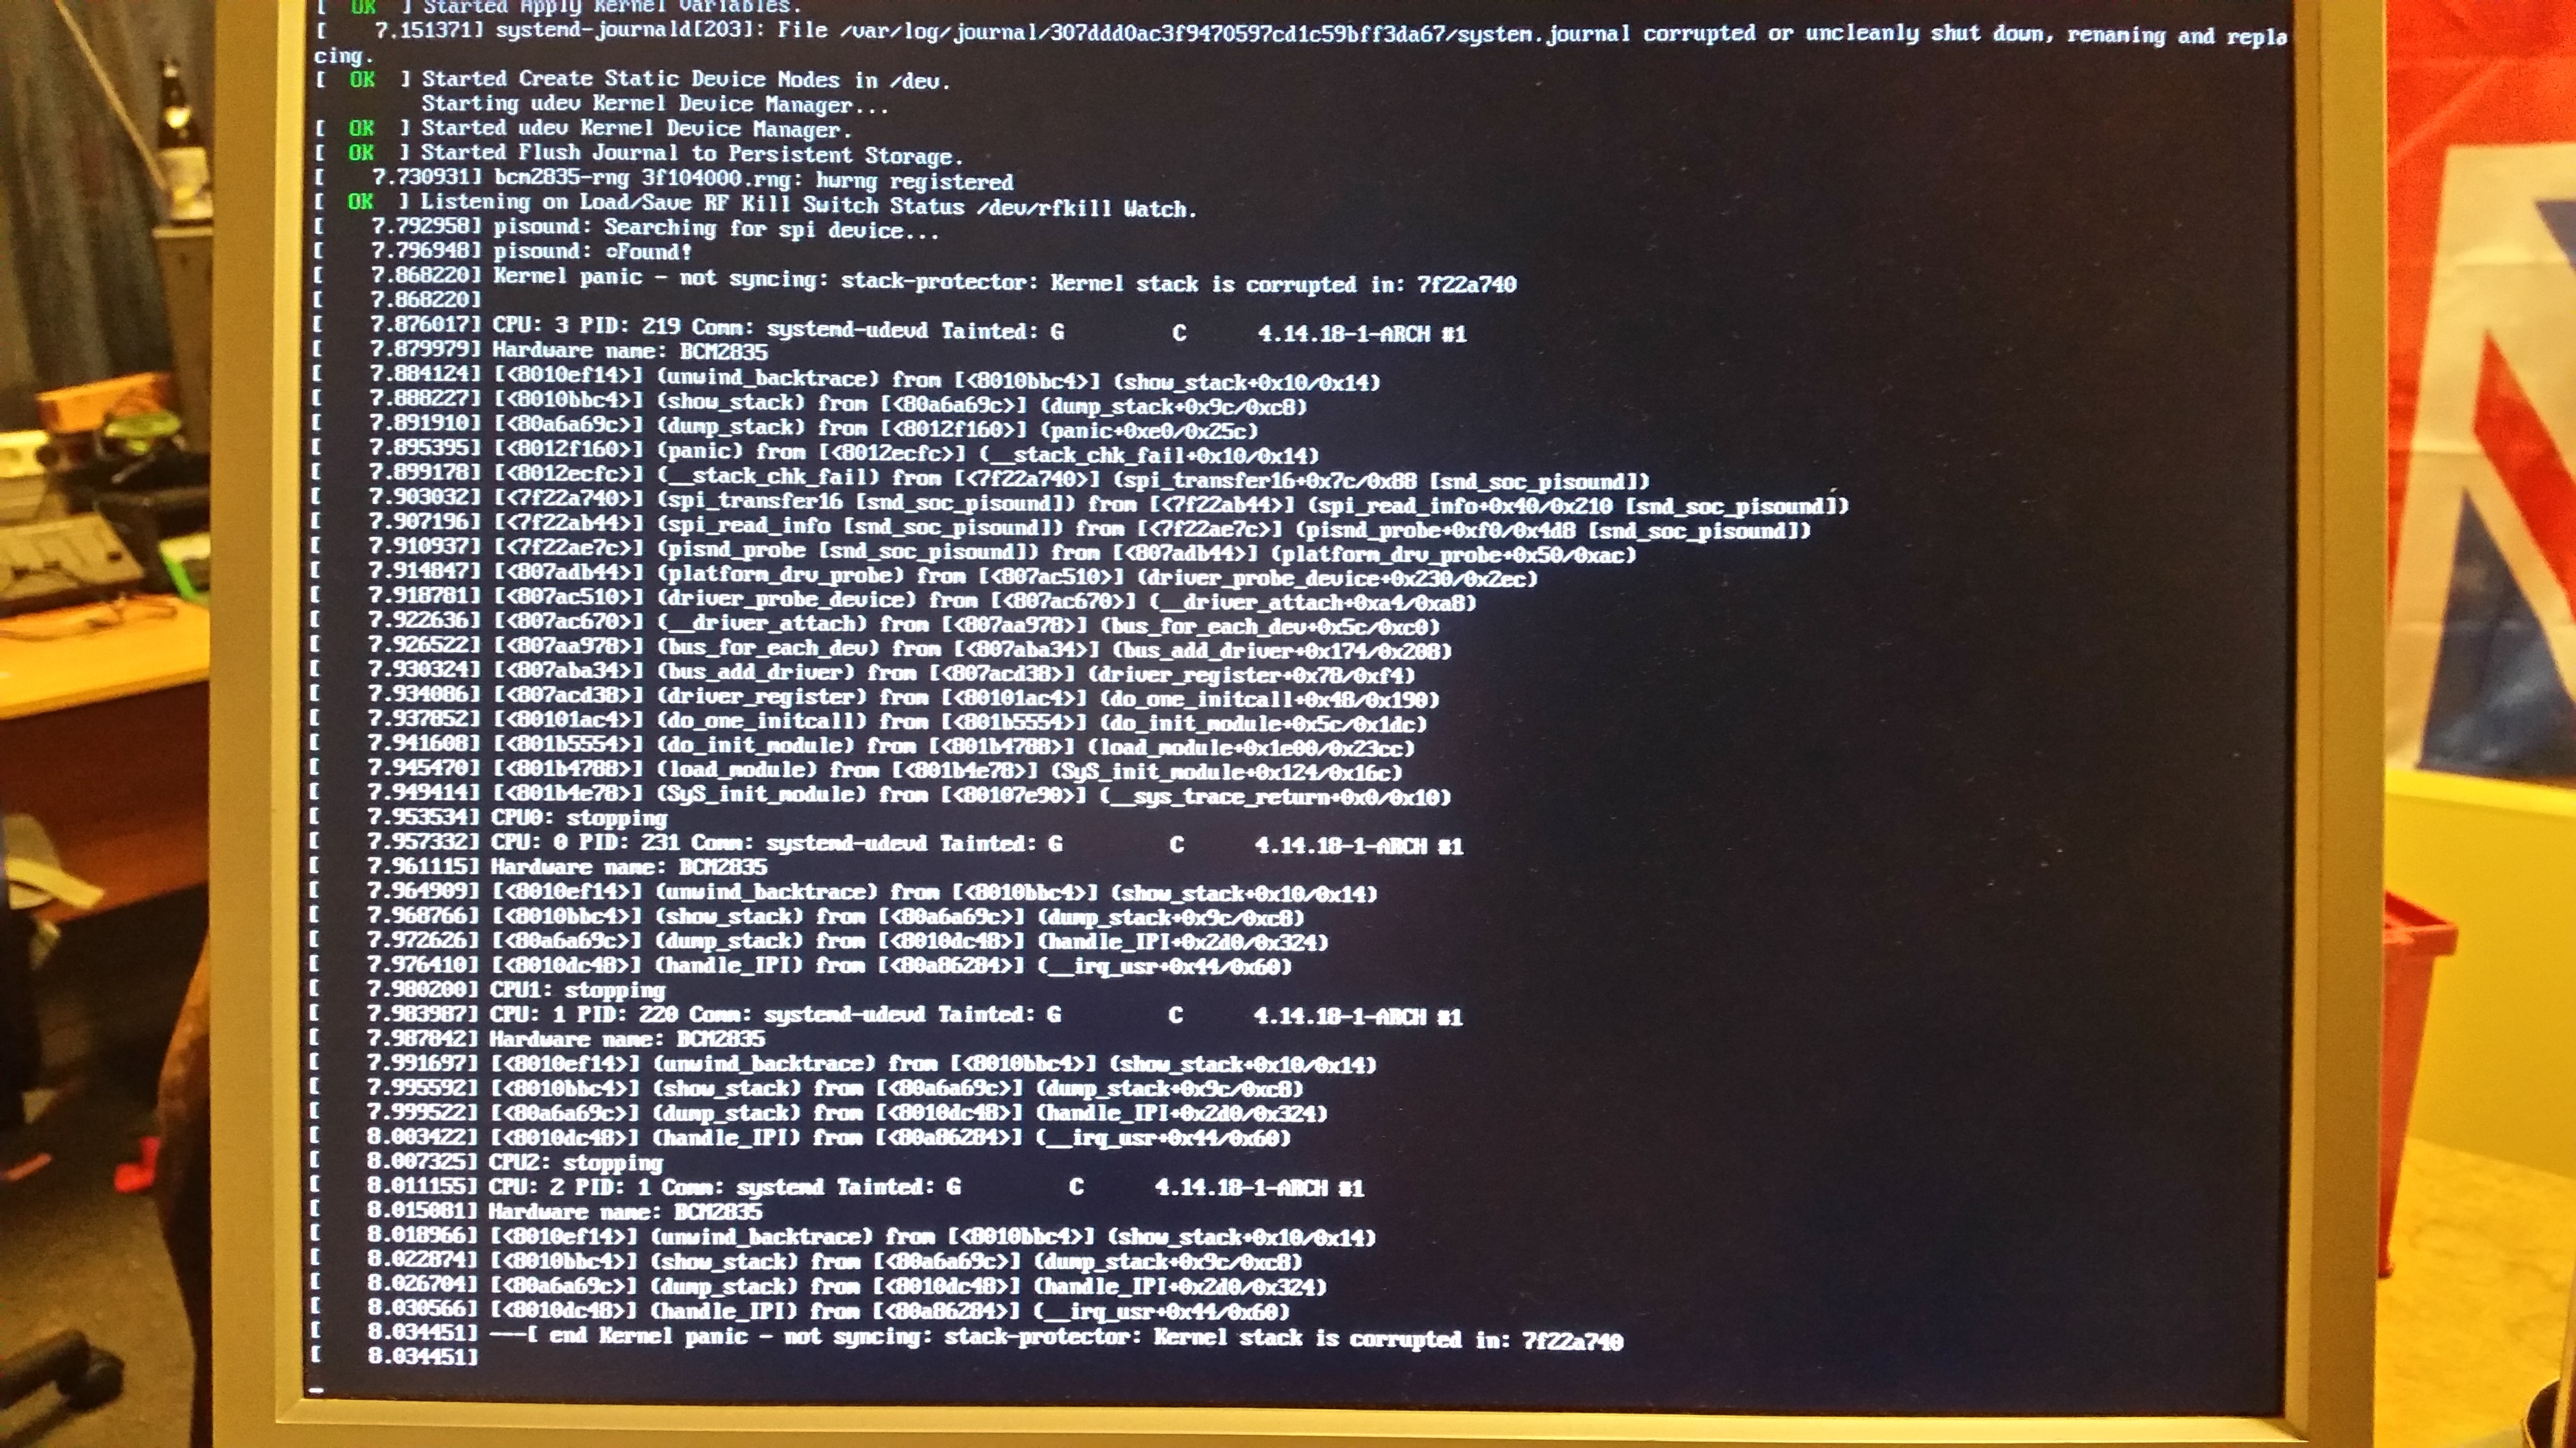 arch linux patch command not found